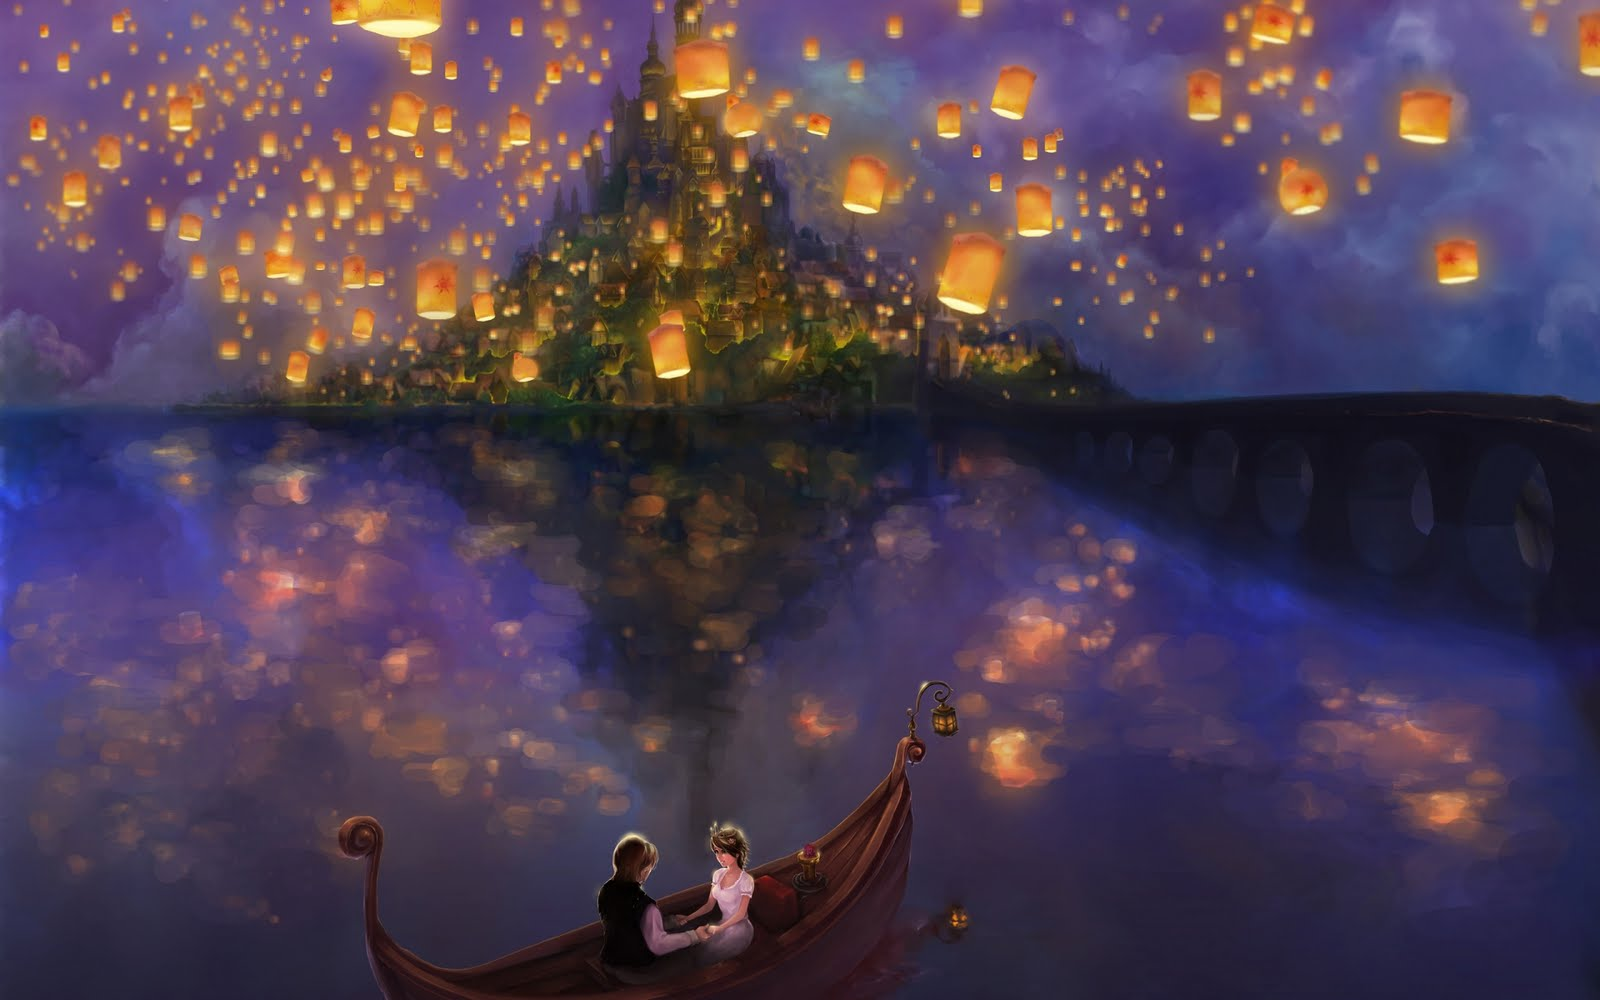 Tangled musical comedy film   Wallpapers 1920x1200 1600x1000